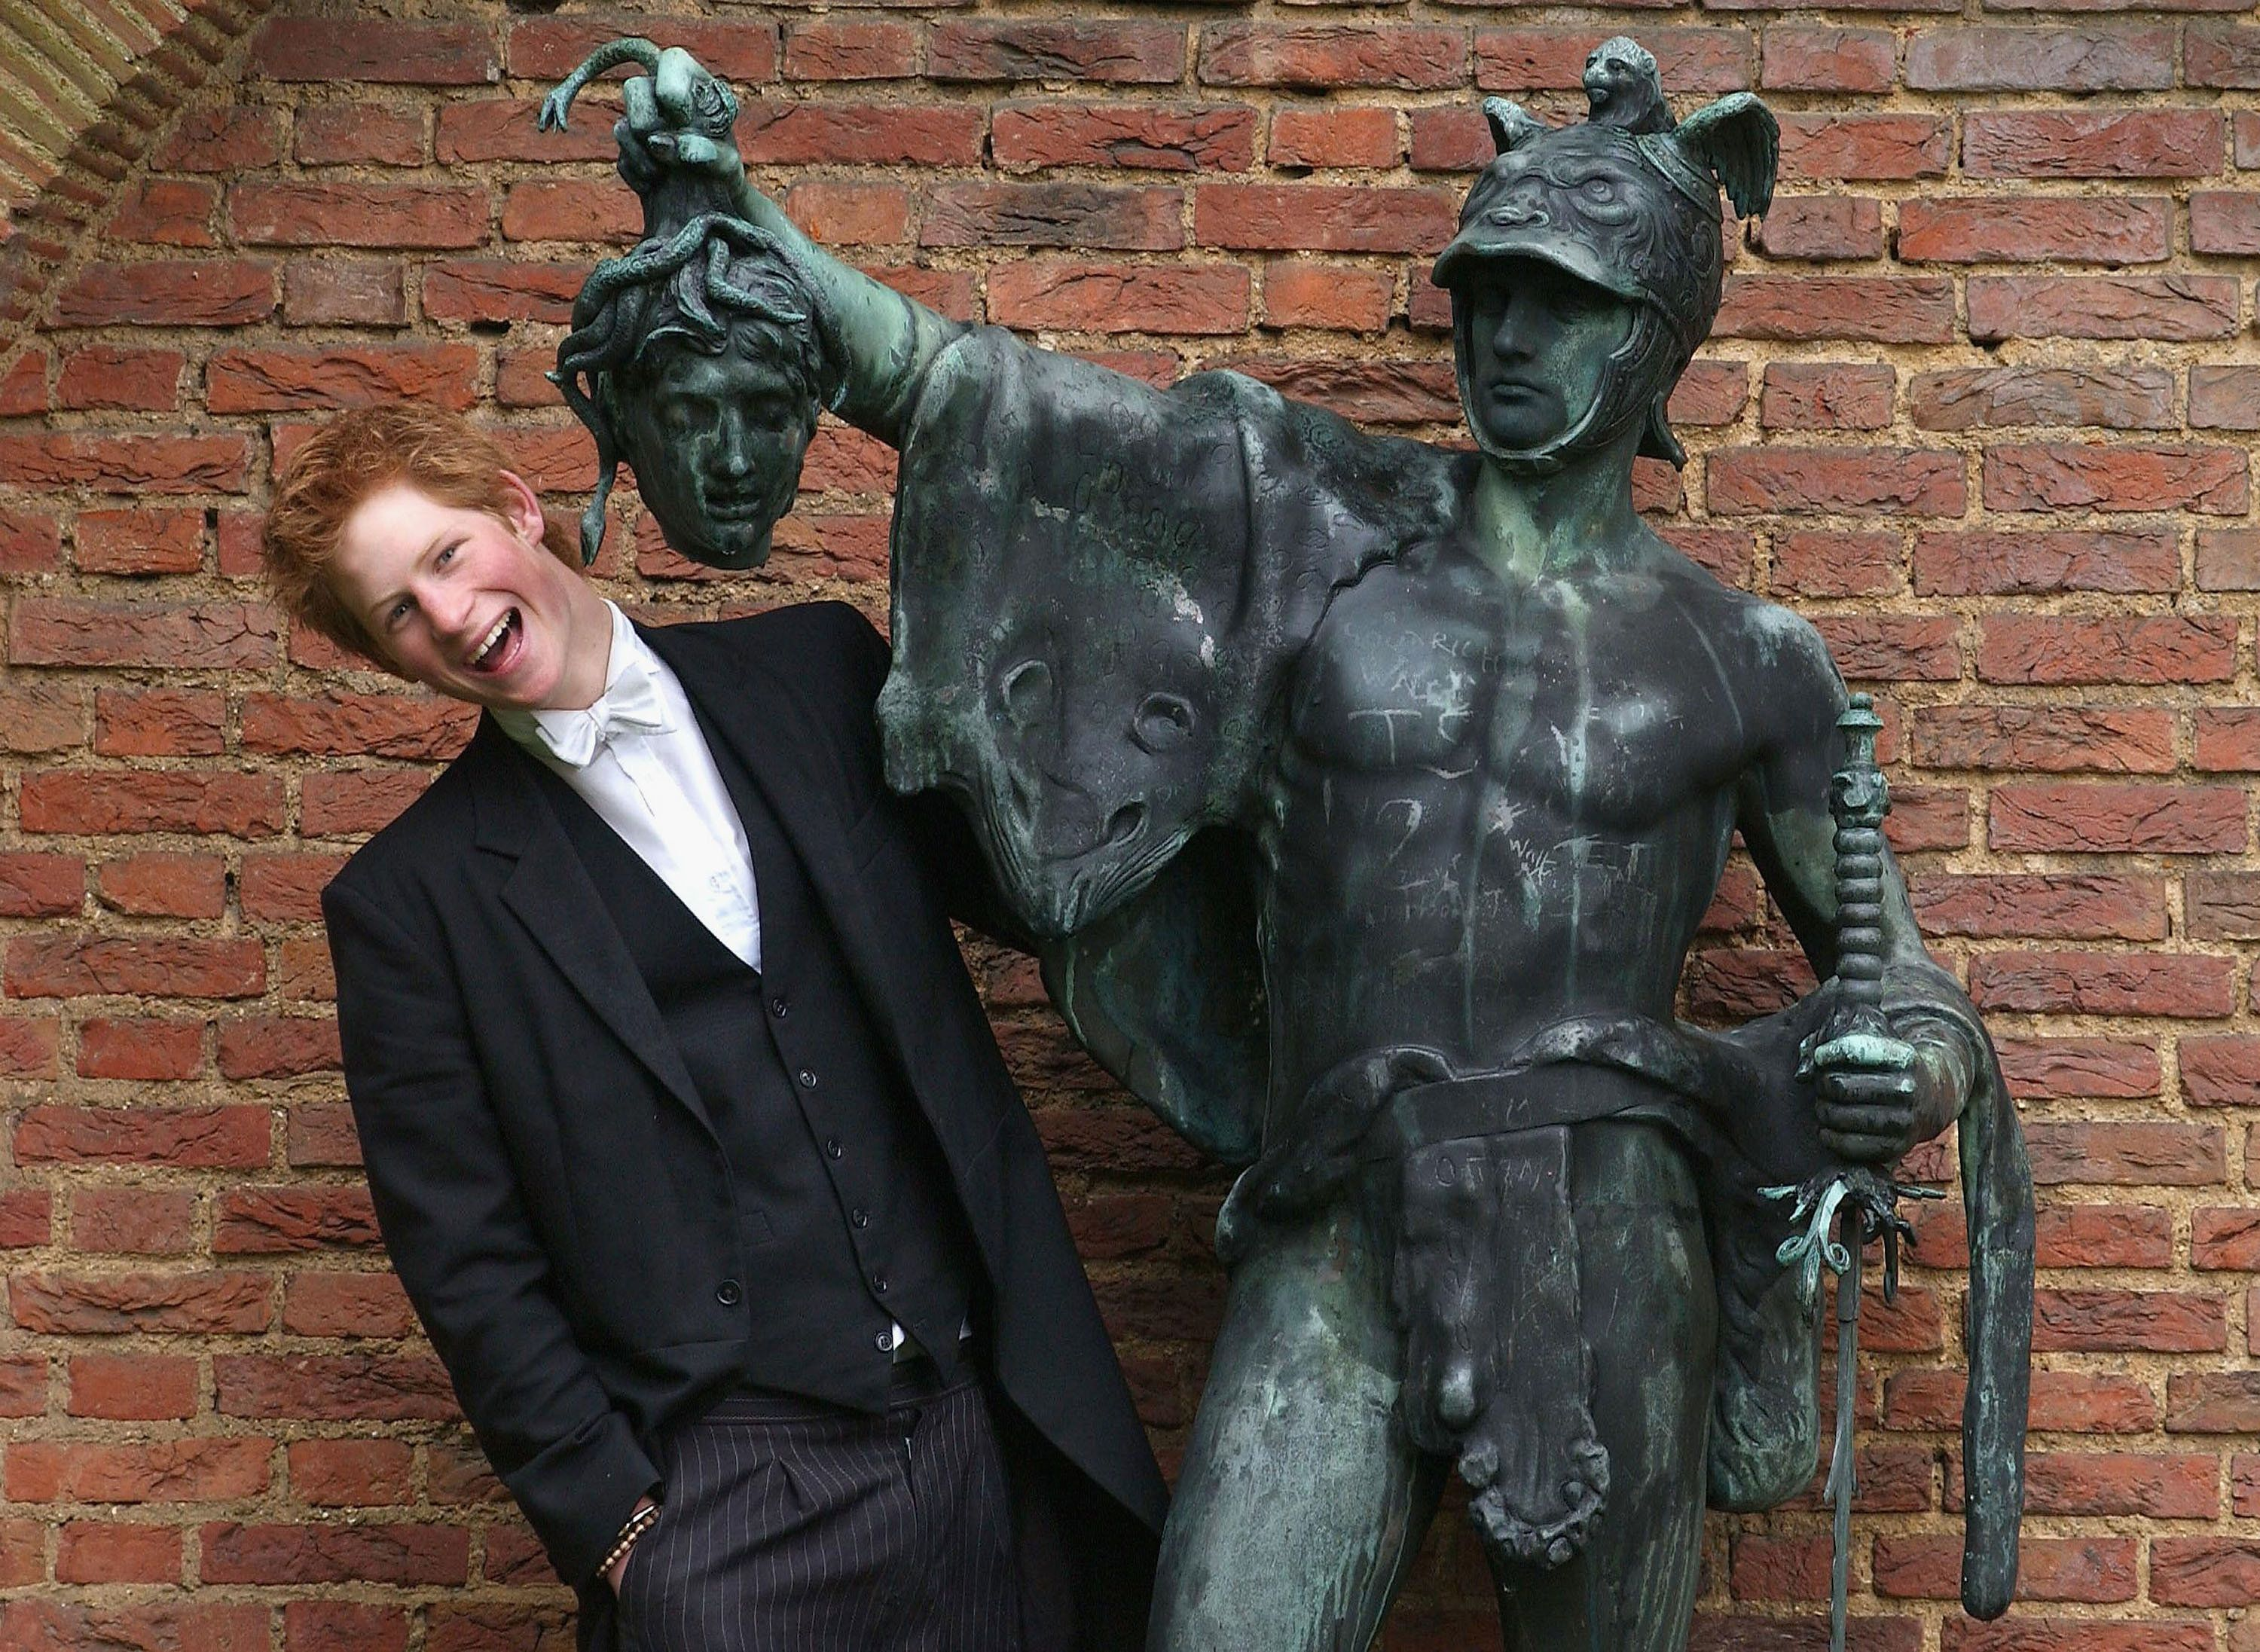 Prince Harry poses next to a bronze statue of Perseus holding the Gorgon's head on May 12, 2003, in the King of Siam's Garden